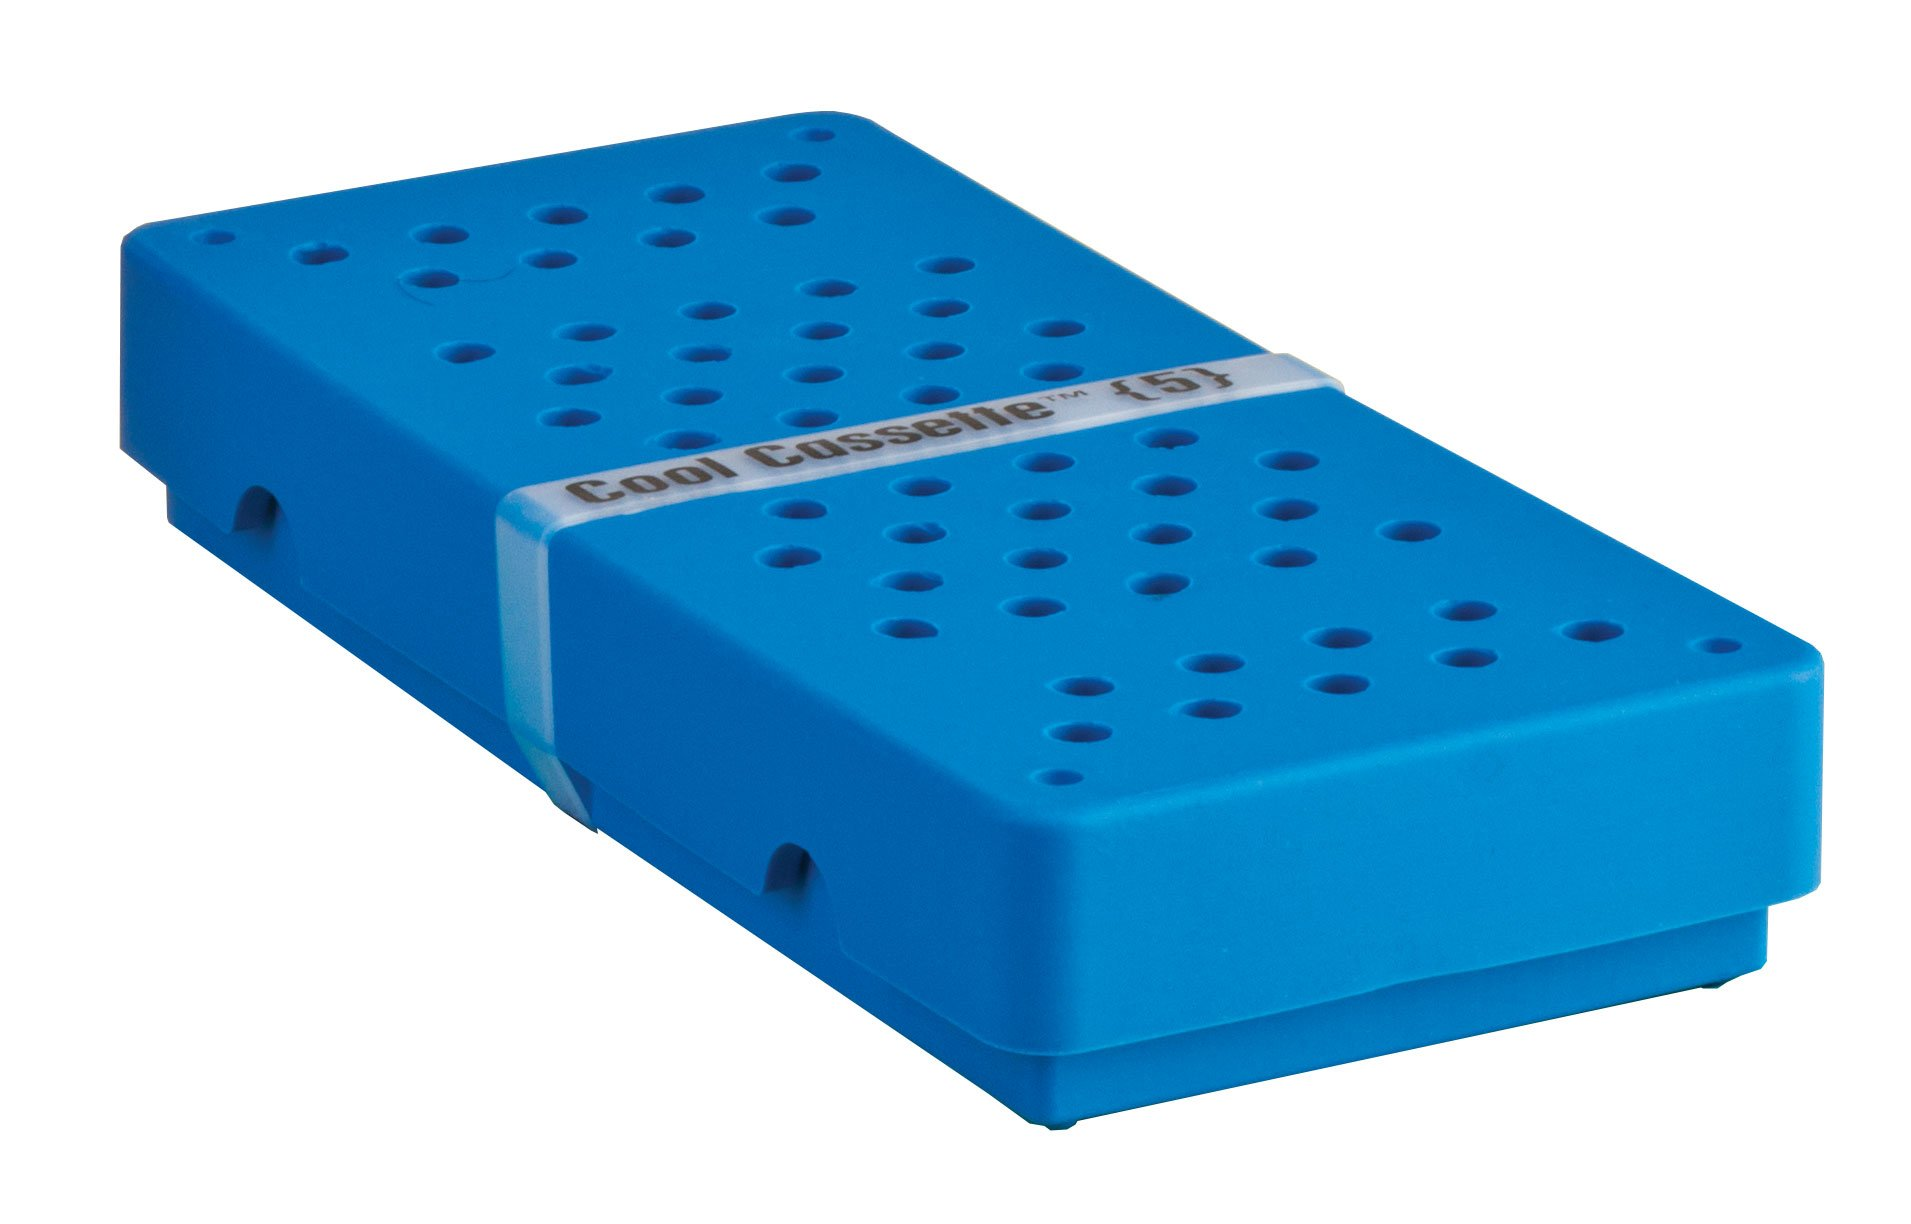 Practicon 7039770 BLU Cool Cassette 5 Instrument Container, Blue